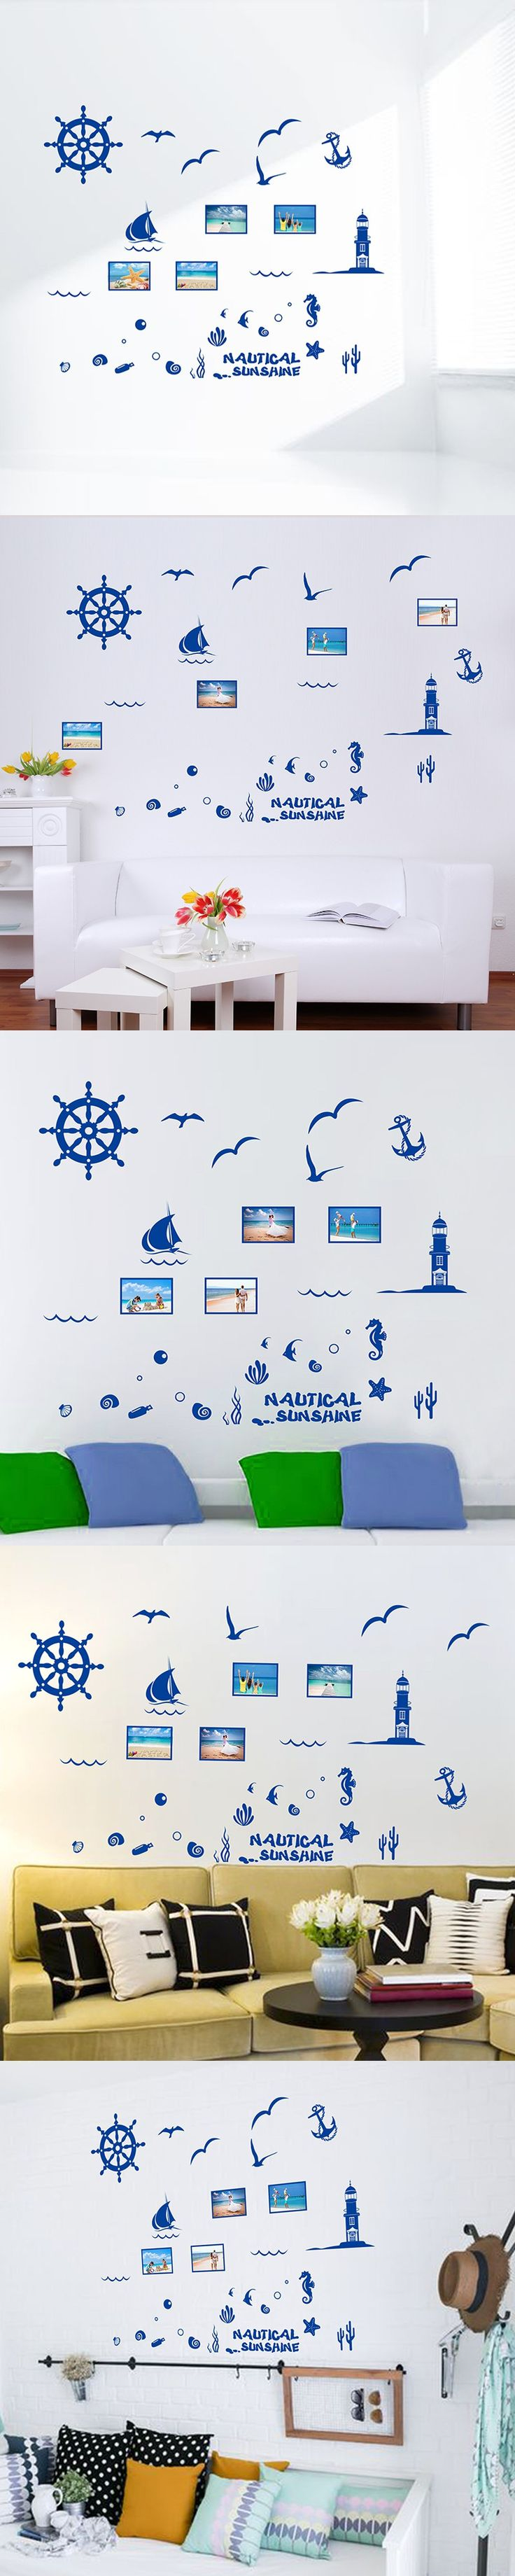 Nautical Decor Wall Sticker Mediterranean Blue Aquatic Plant Photo Frame Memory Sticker For Children Home Decoration Accessories $7.96